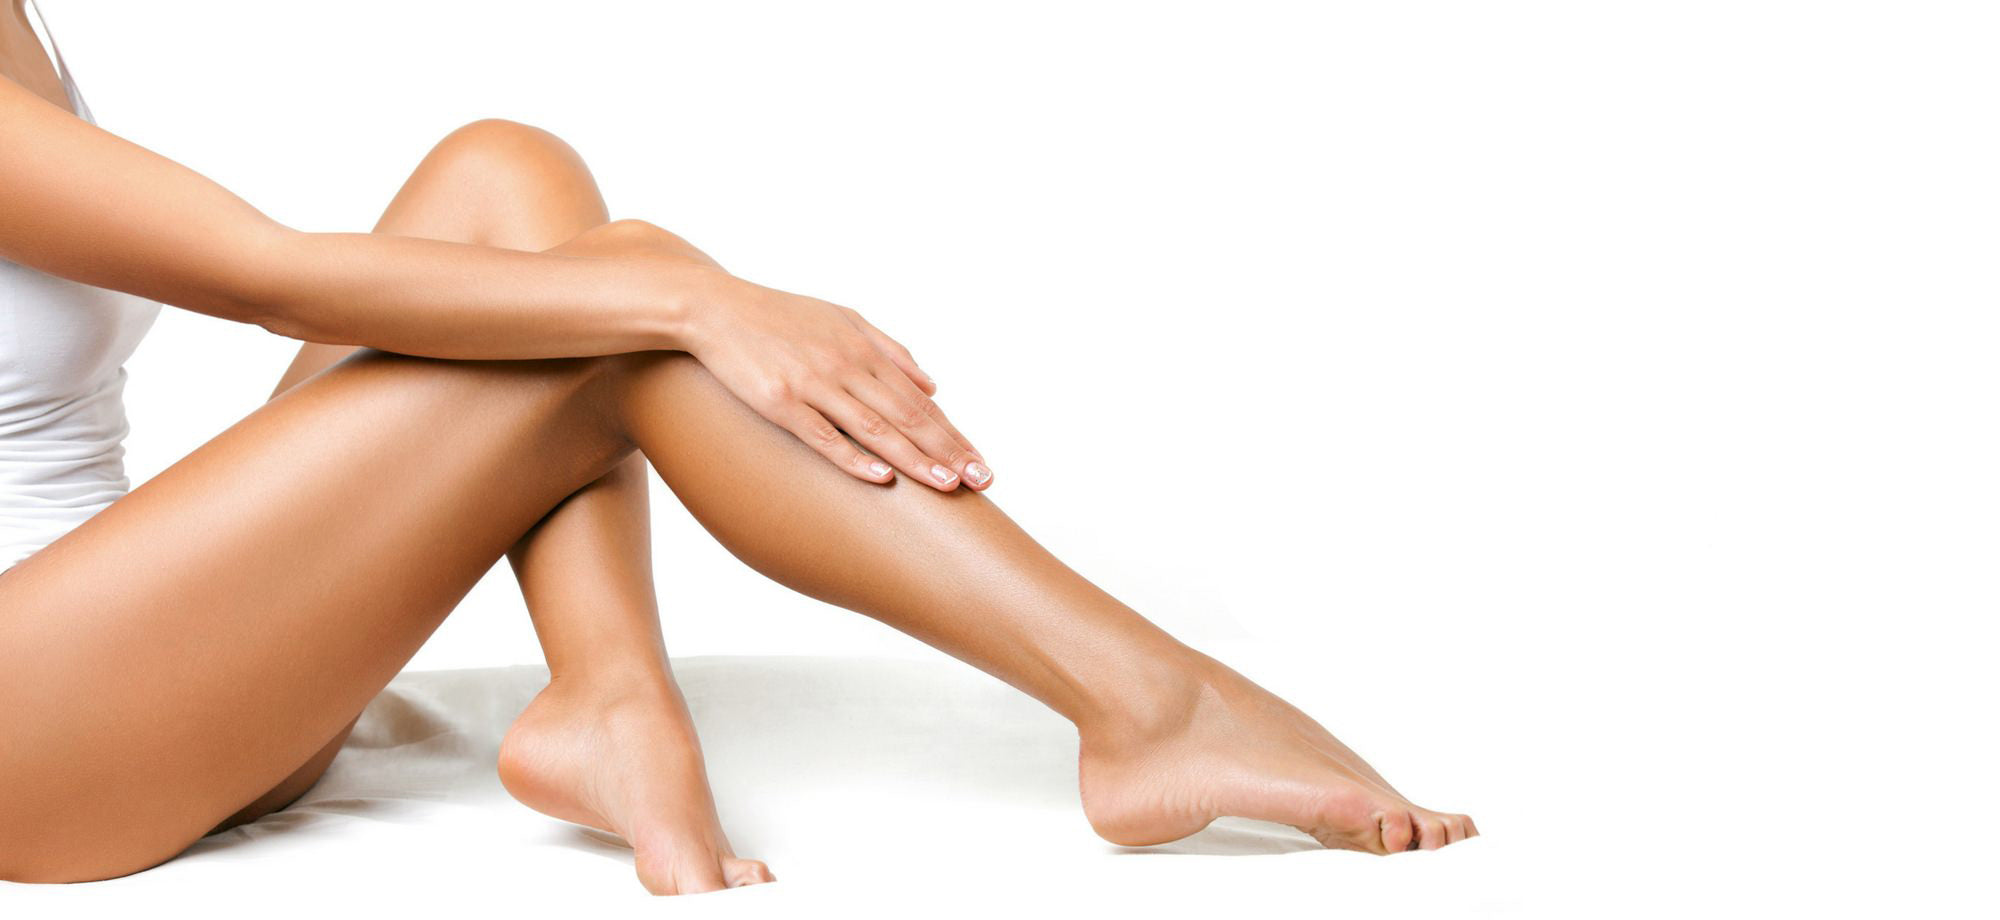 Sexy Legs Silky Smooth At Home affordable IPL Laser Hair Removal